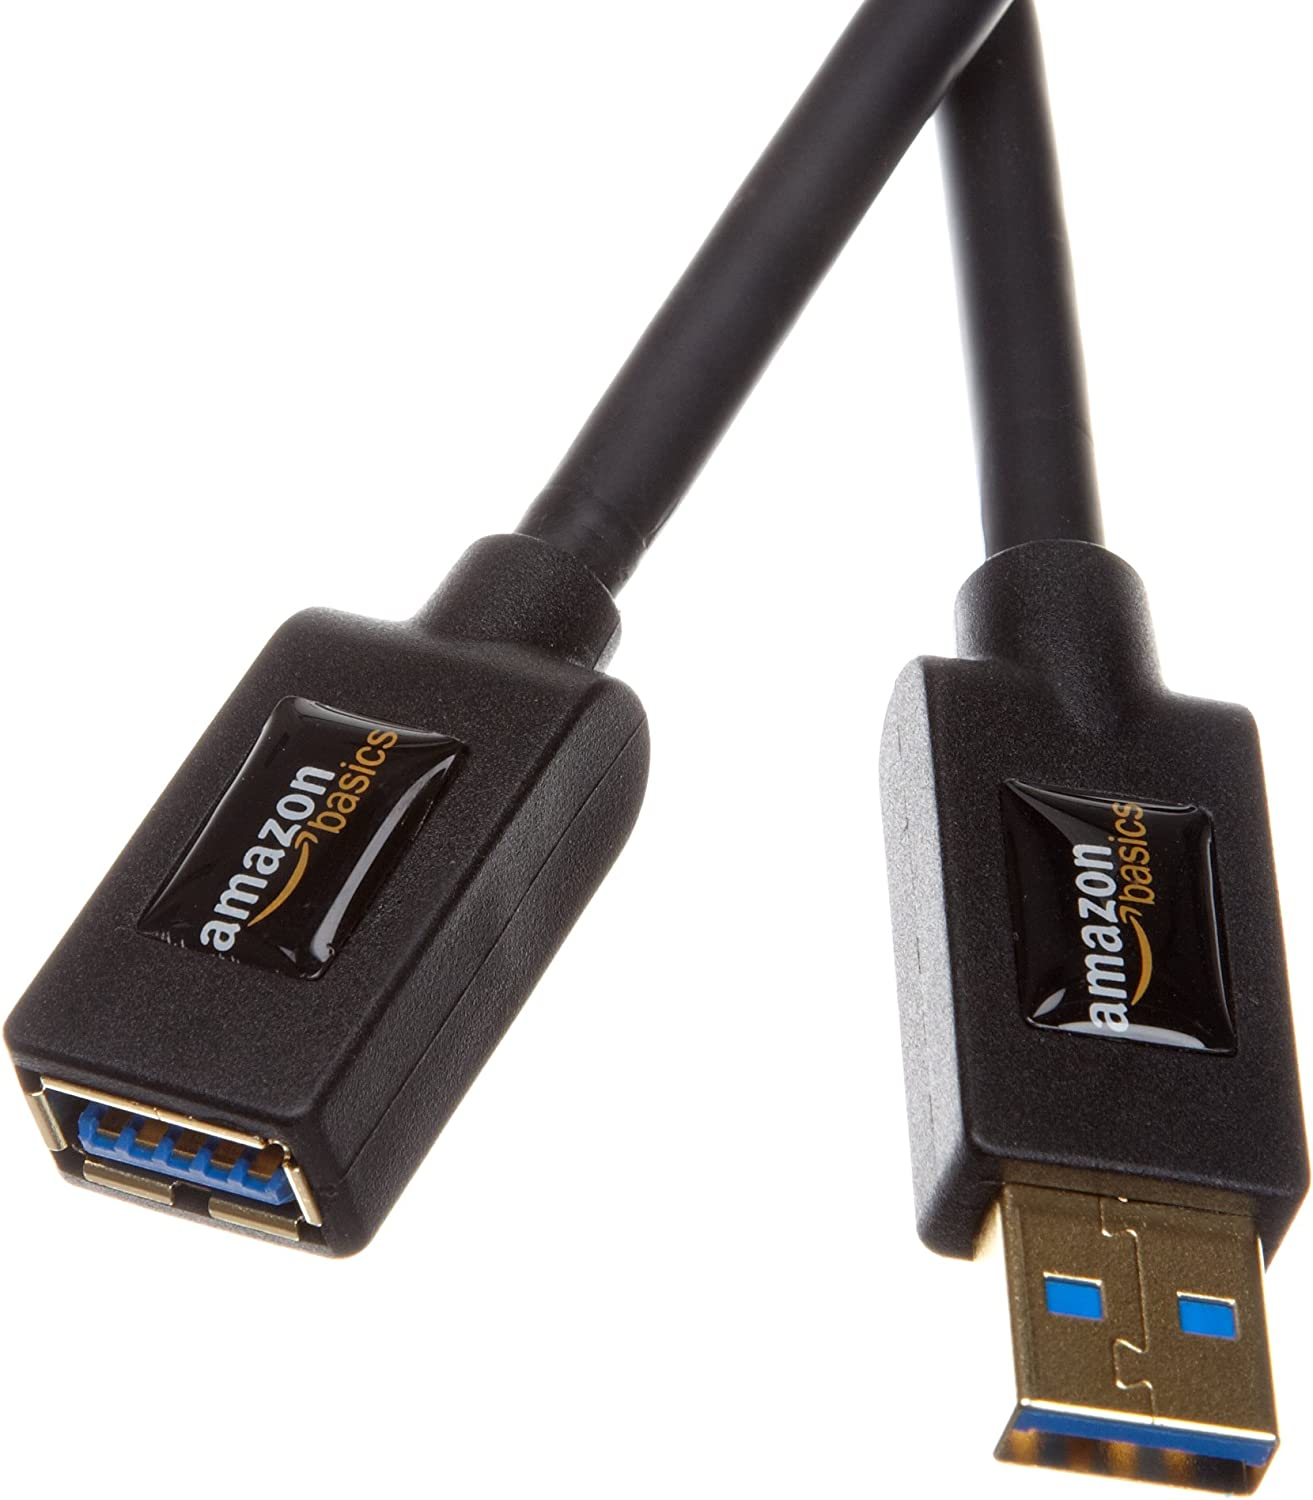 AmazonBasics USB 3.0 Extension Cable - A-Male to A-Female - 3.3 Feet (1 Meter), 10-Pack